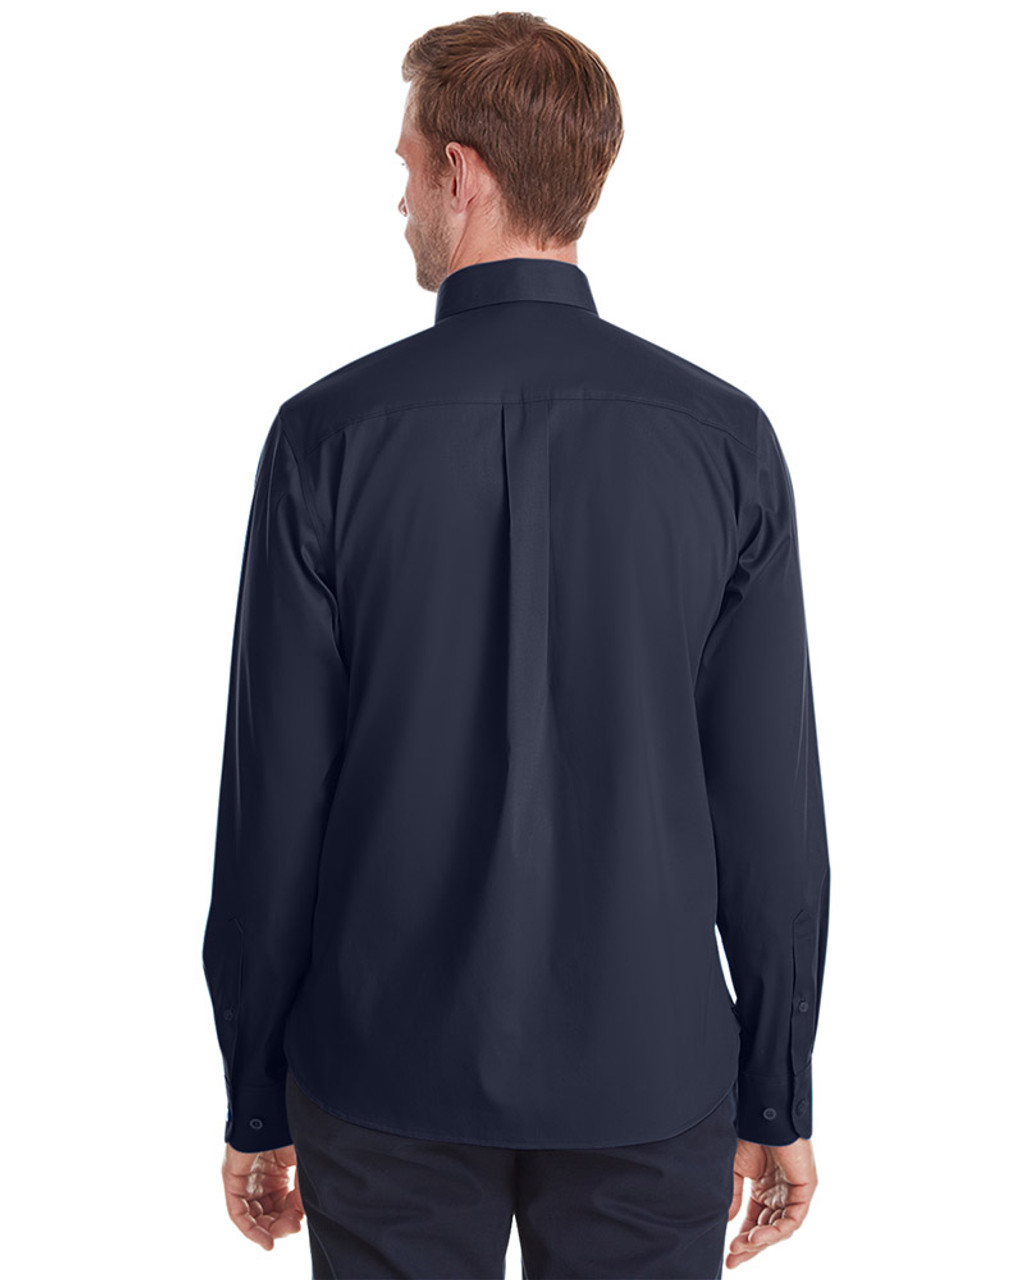 Navy - back, DG561 Devon & Jones Men's Crown Collection™ Stretch Broadcloth Untucked Shirt | Blankclothing.ca